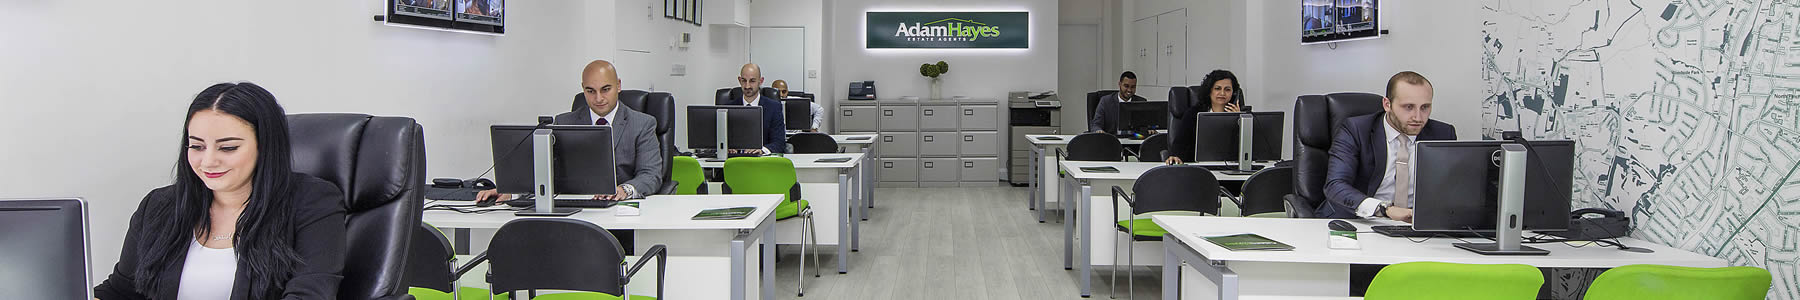 Adam Hayes Estate Agents